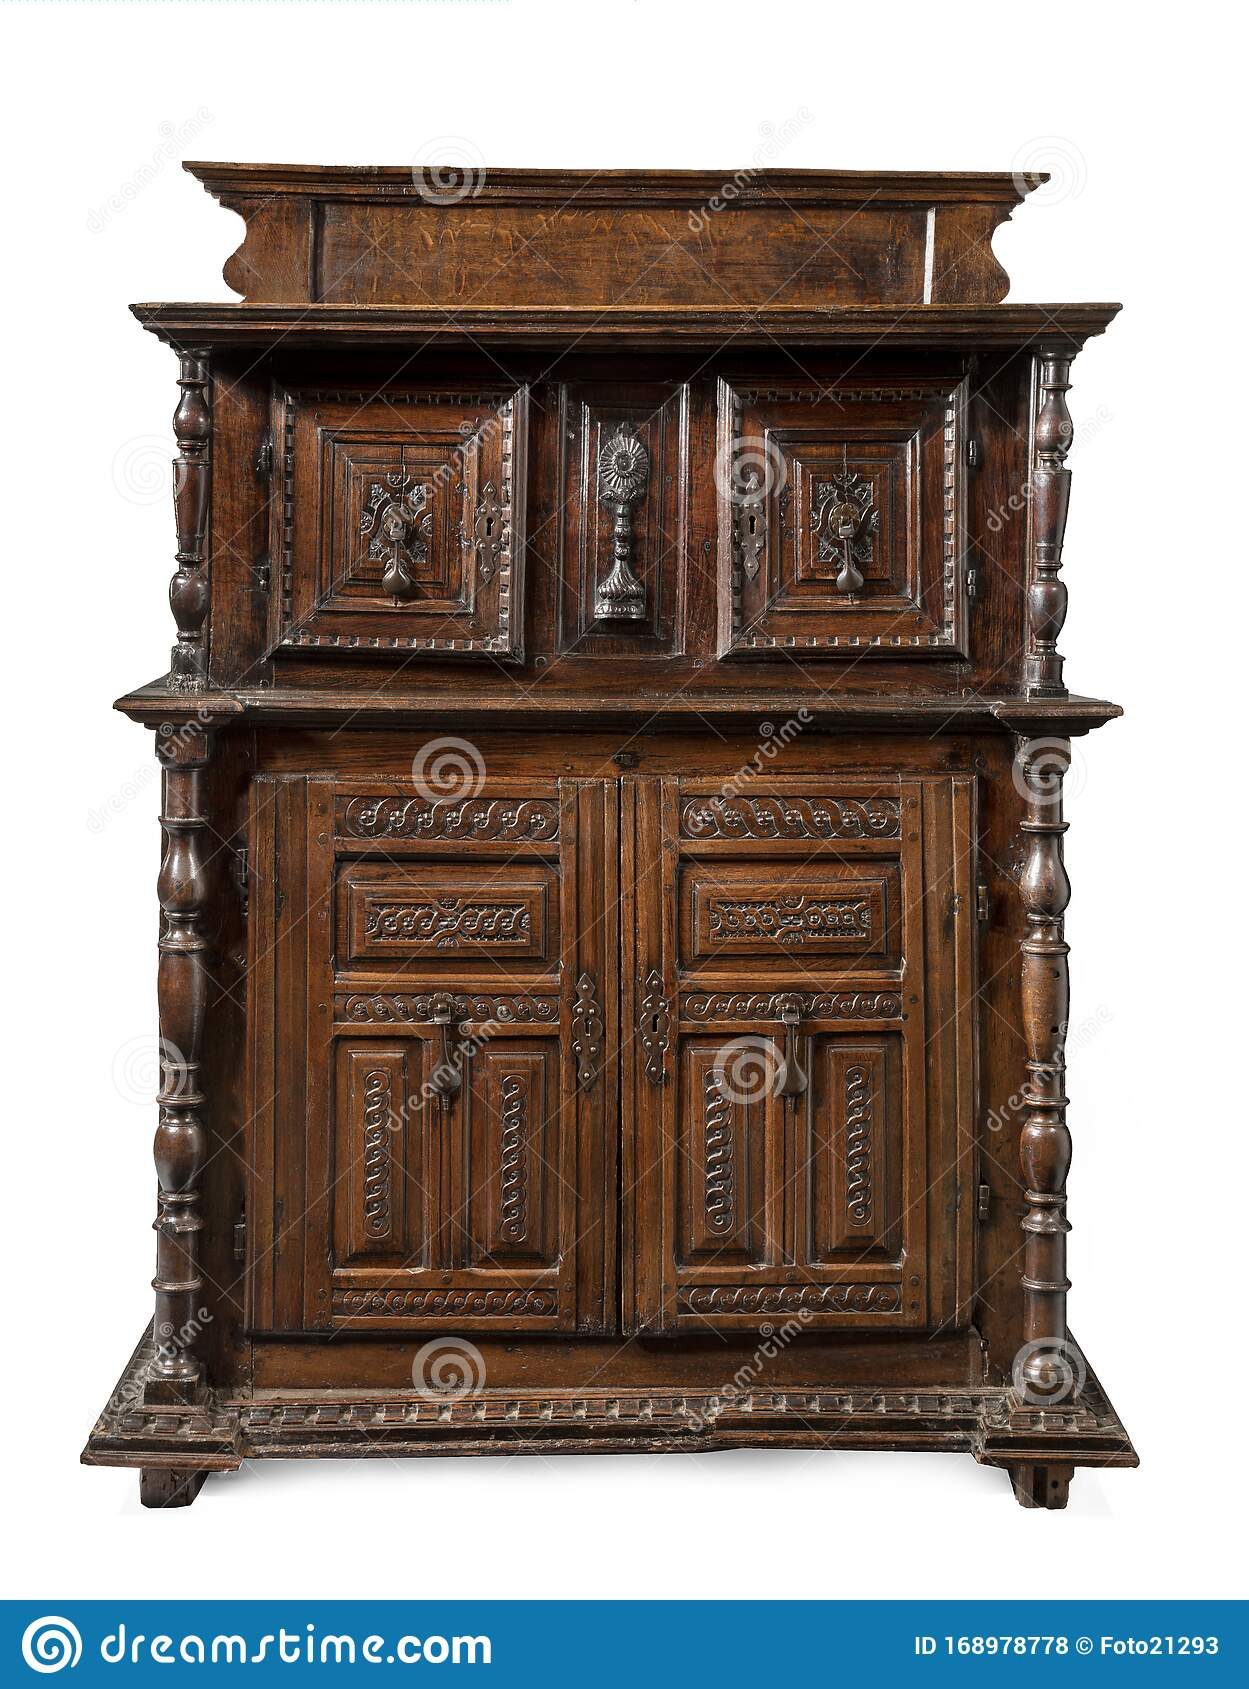 577 Antique Sideboard Photos Free Royalty Free Stock Photos From Dreamstime